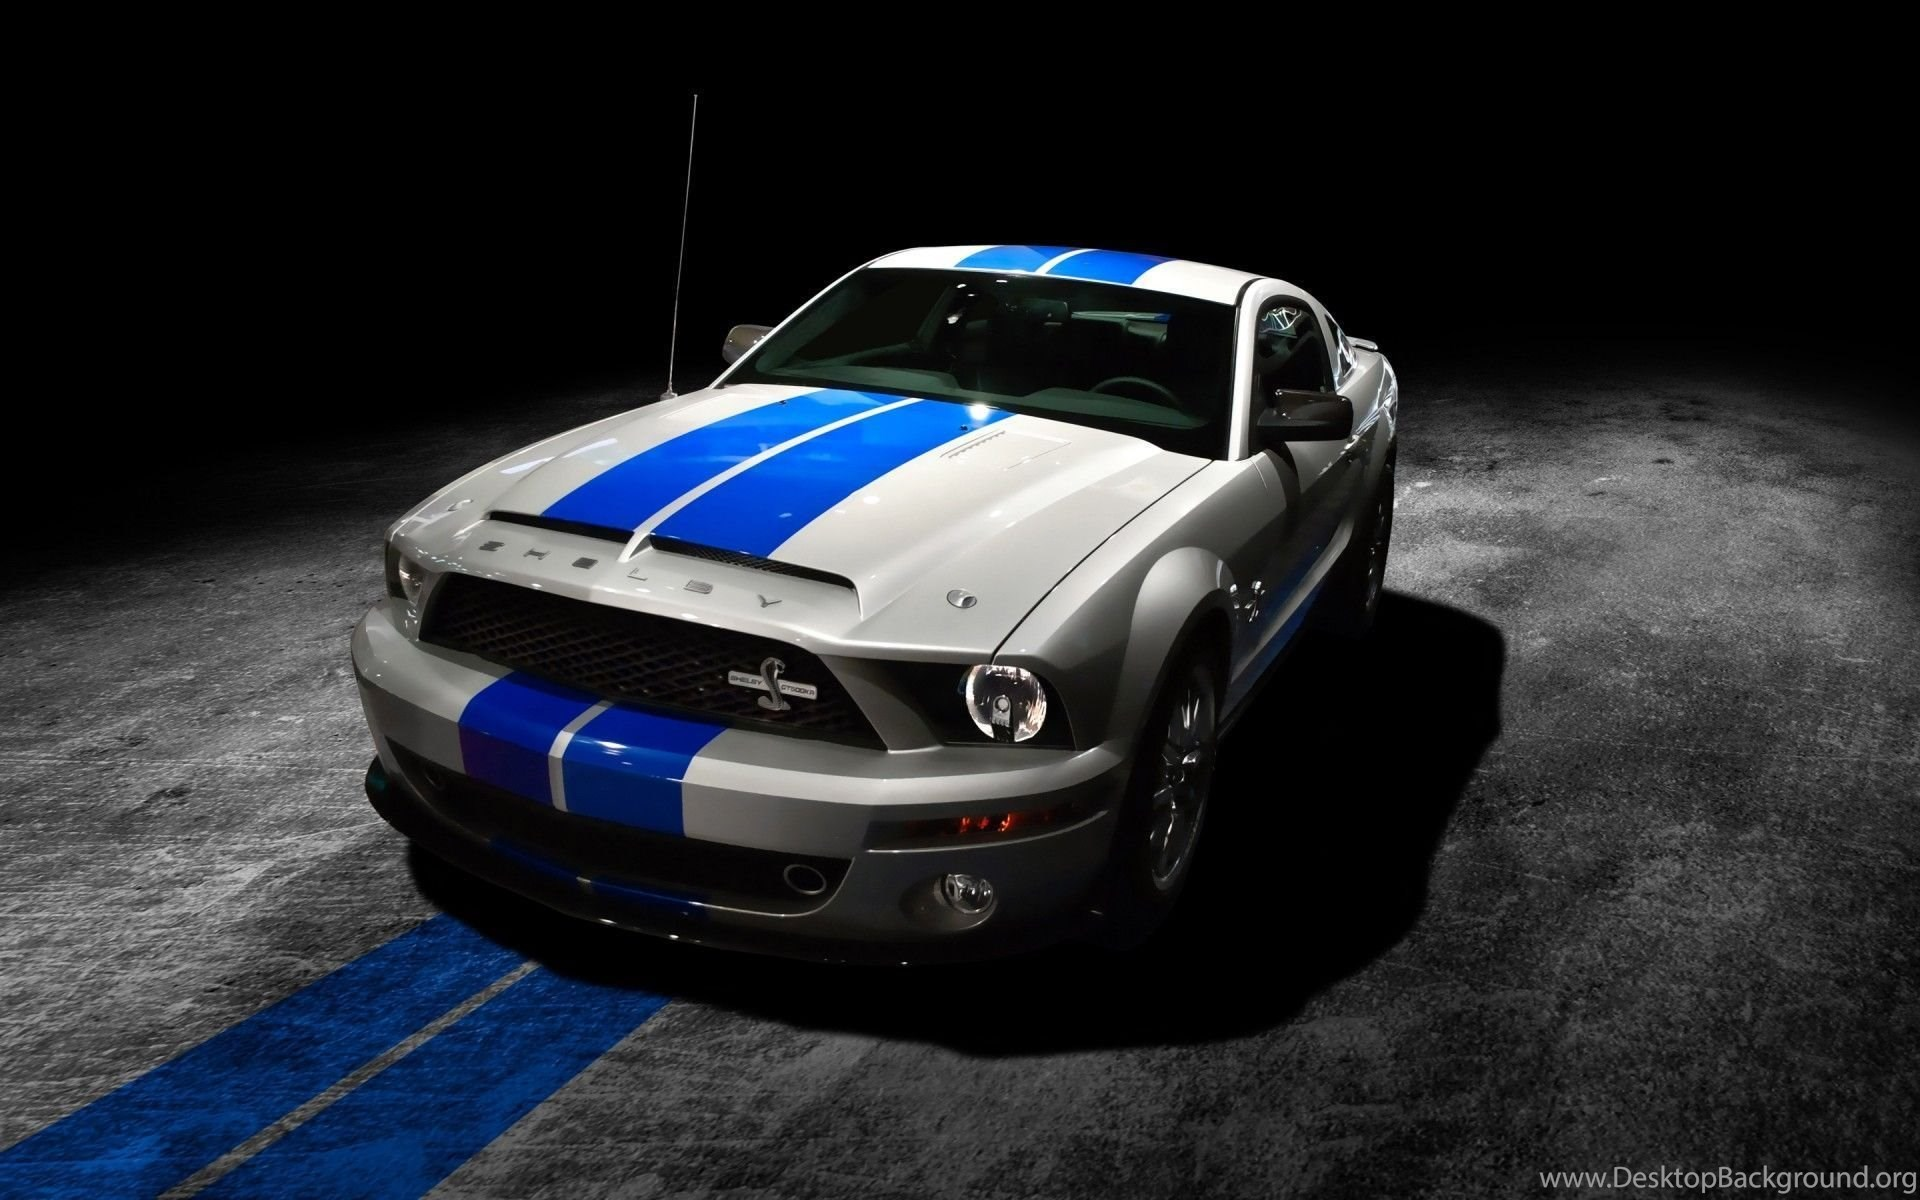 New Ford Mustang Gt Hd Wallpapers Evopicture Desktop Background